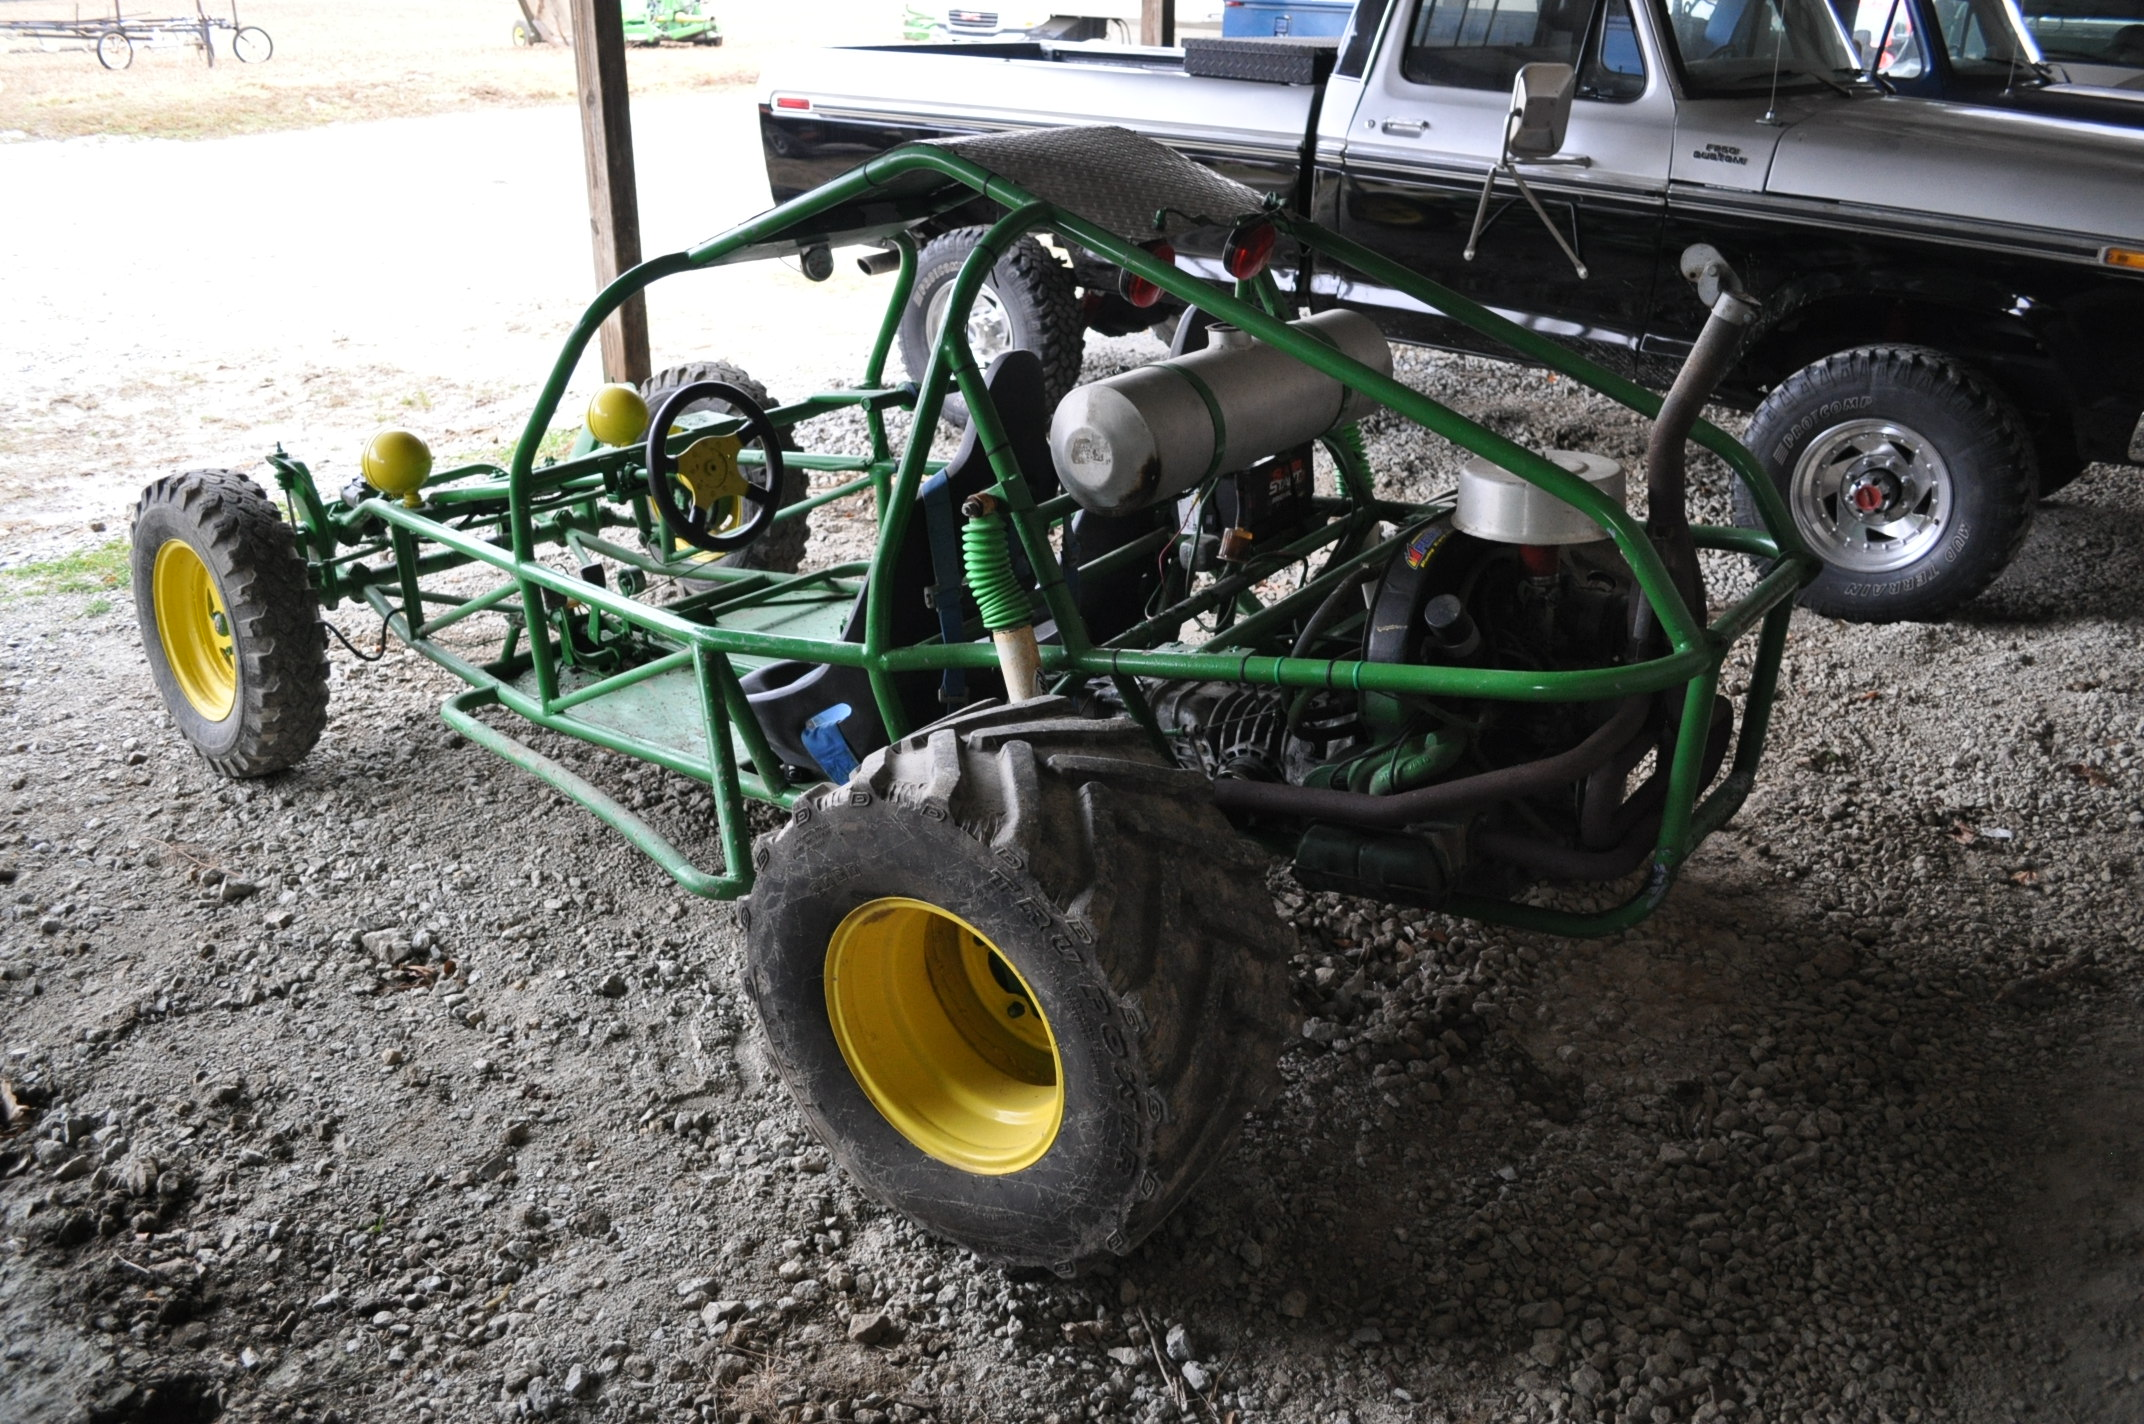 Dune buggy, VW air-cooled gas engine, 31 x 15.5-15 rear, 6.70-15LT front - Image 3 of 10